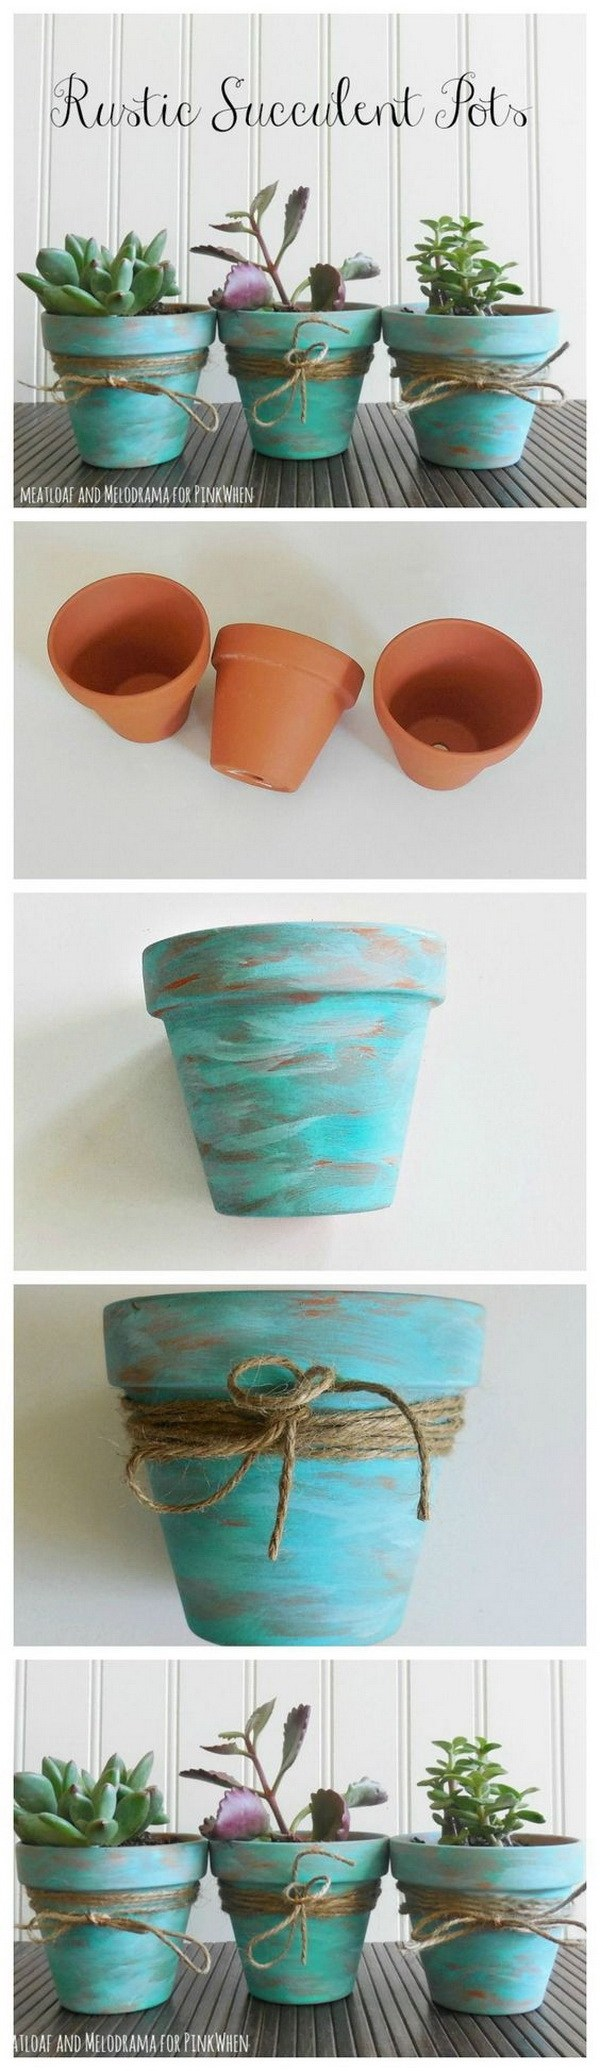 7-diy-ideas-to-decorate-with-terracotta-pots